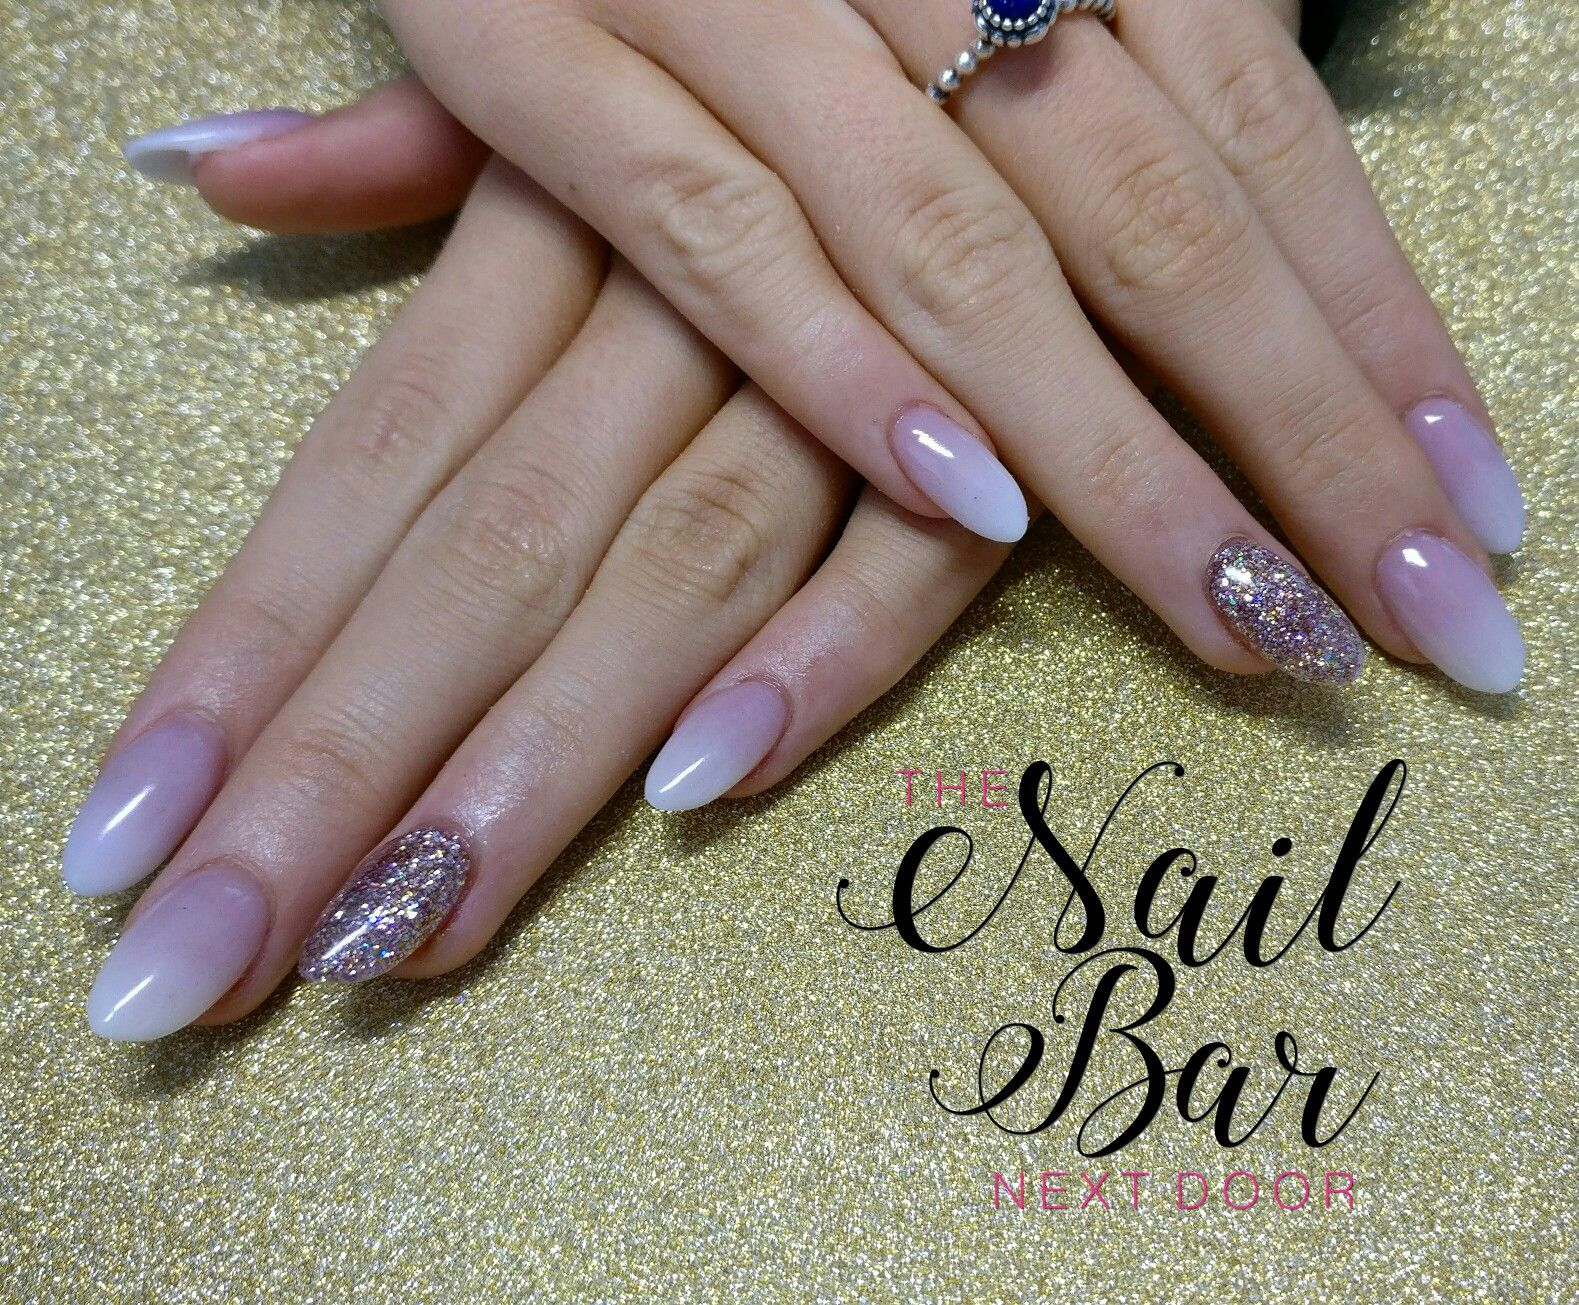 Baby boomer and rose gold acrylic nails | My work | Pinterest